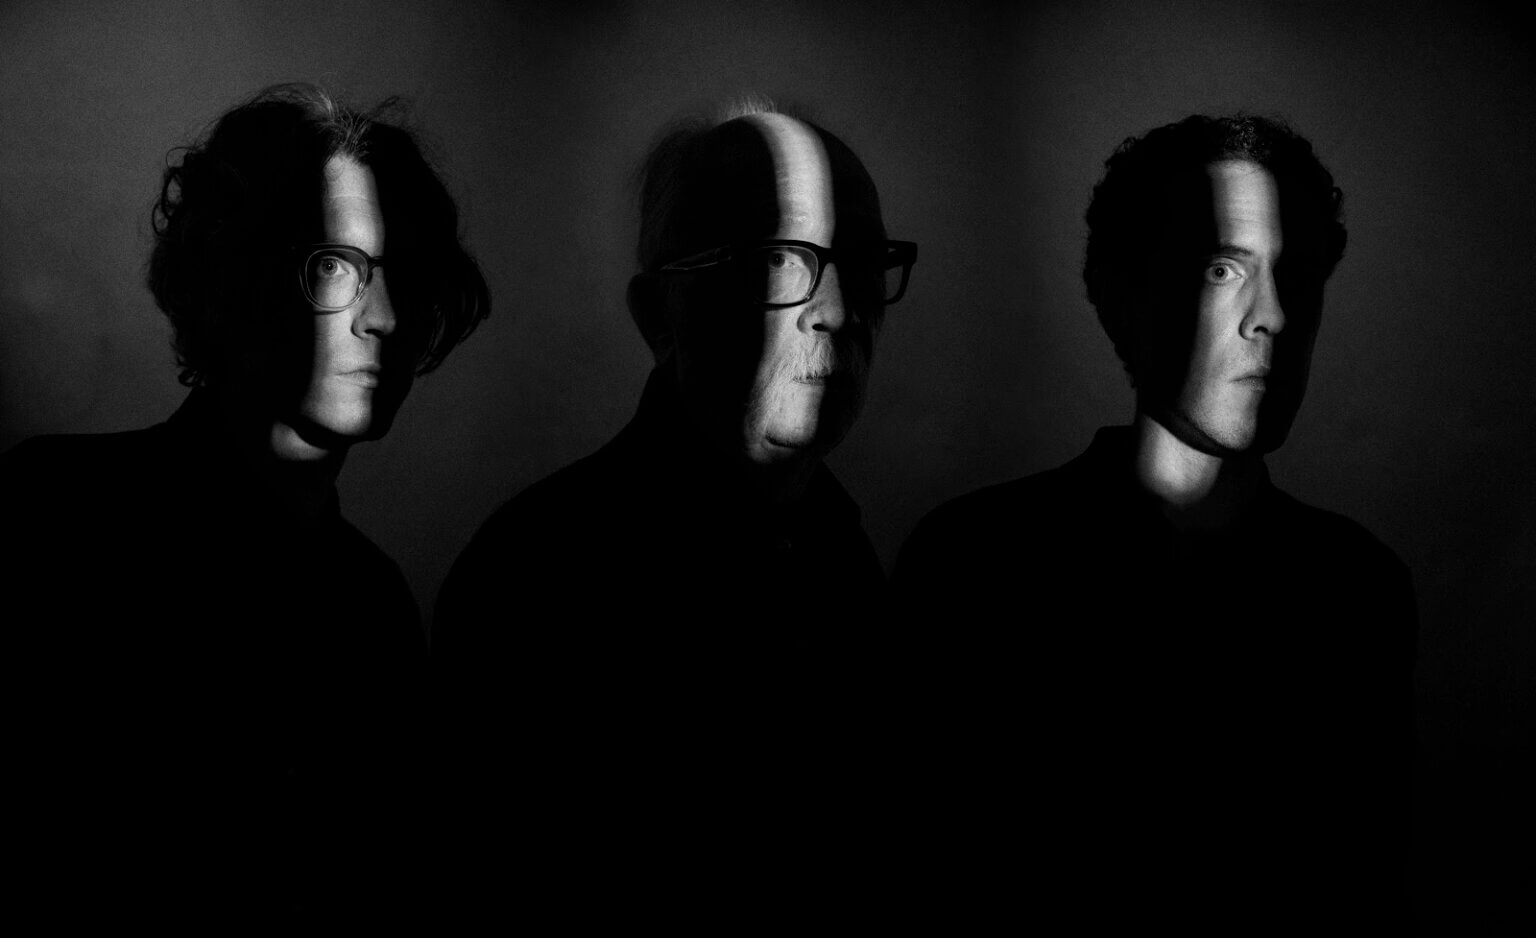 """Legendary film director/musician John Carpenter has shared a new single and visualizer for """"The Dead Walk,"""" a track from his first album"""